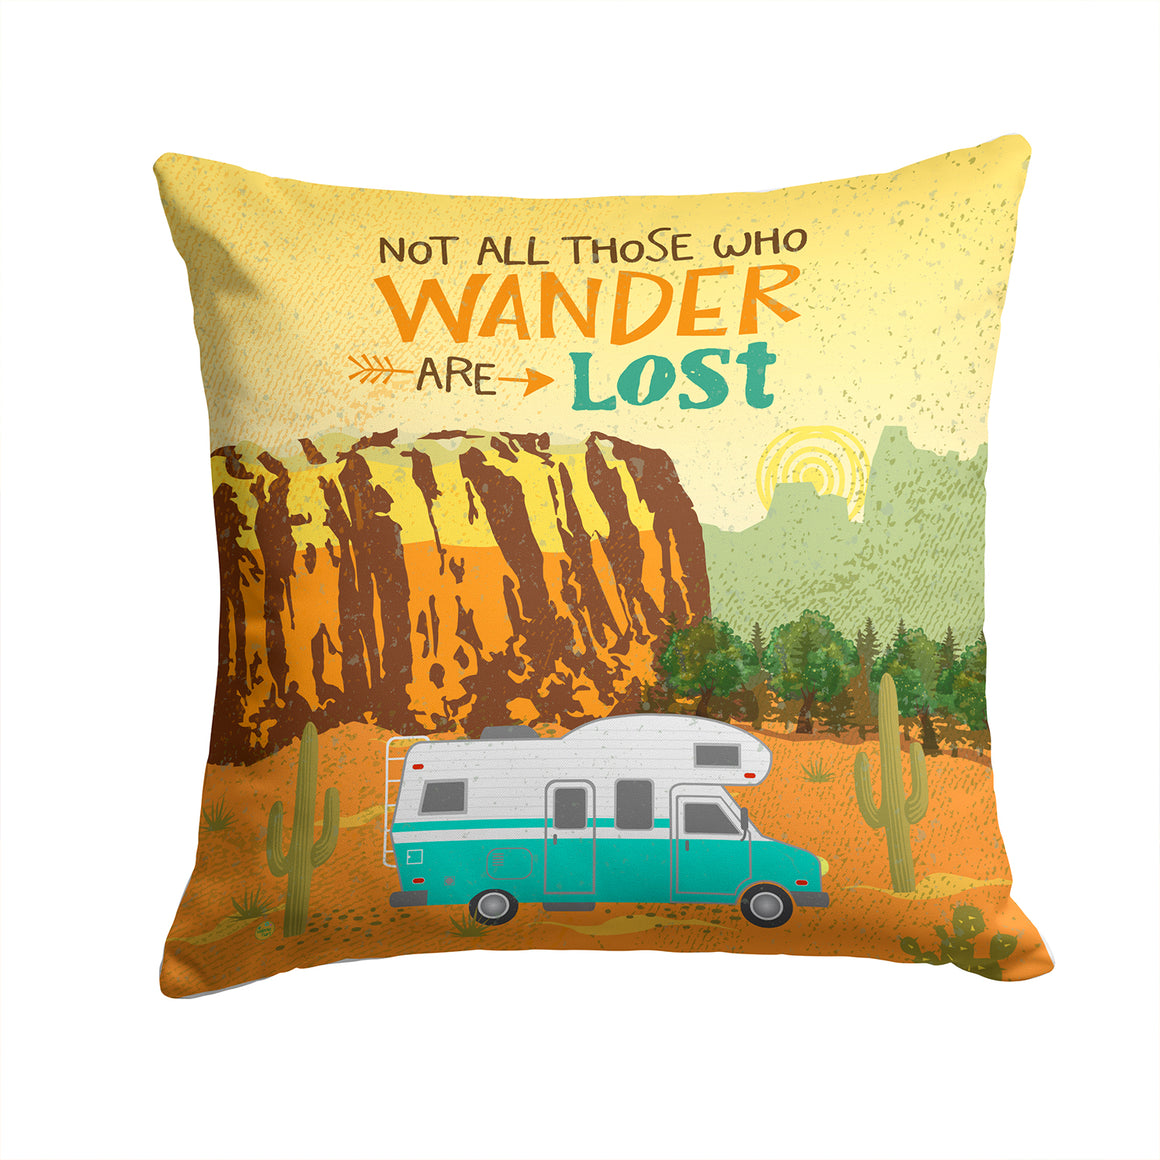 Buy this RV Camper Camping Wander Fabric Decorative Pillow VHA3027PW1414